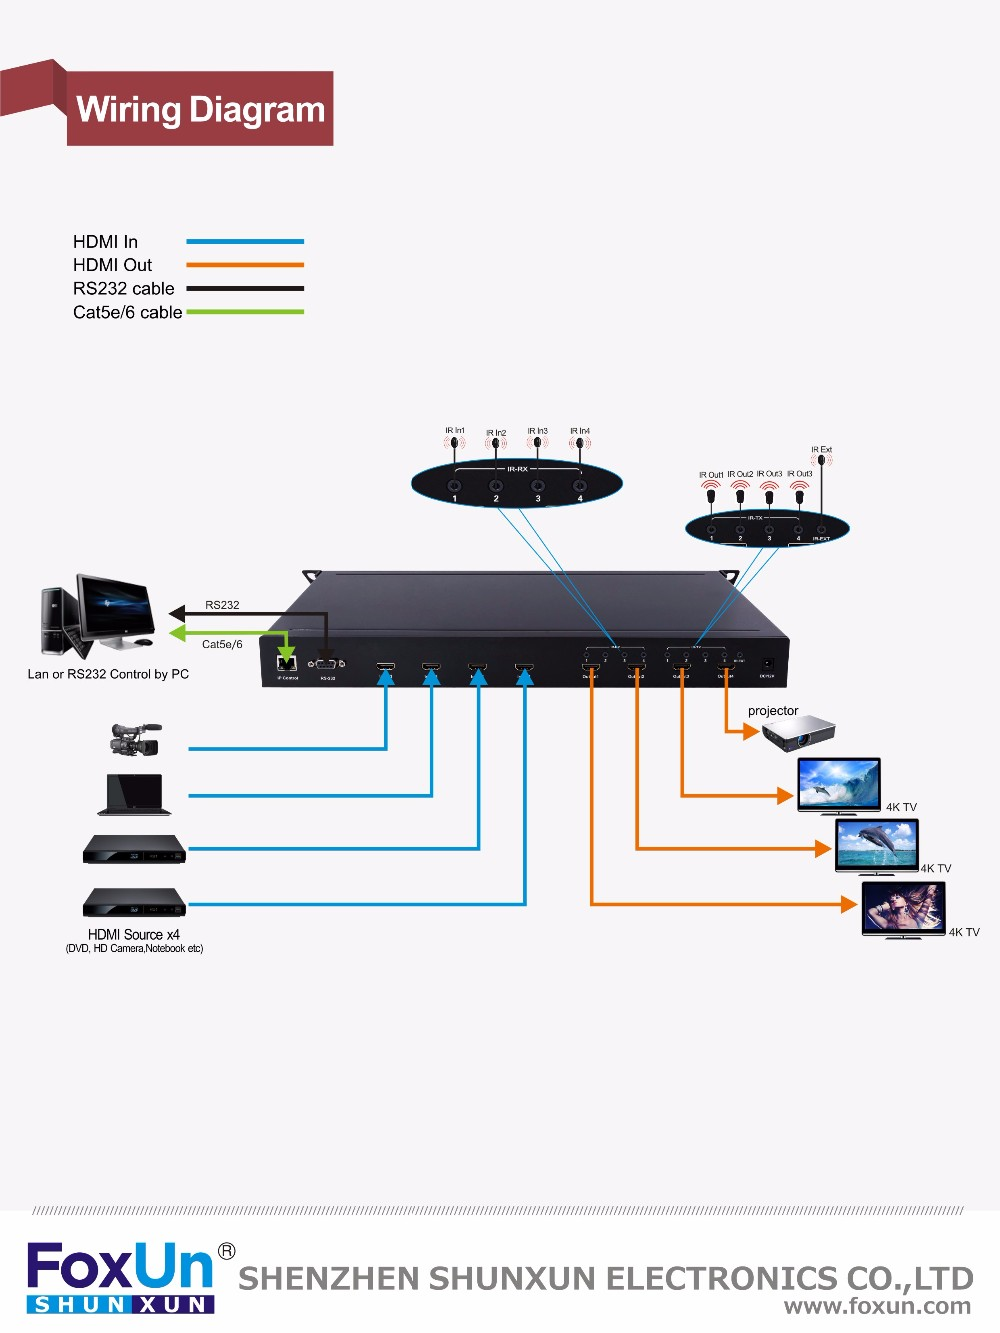 2.0 version HDMI Matrix 4 to 4 support 4Kx2K @60Hz YUV 4:4:4, HDCP 2.2 in/out, 18 Gbps data rate, 3D, IR, RS232